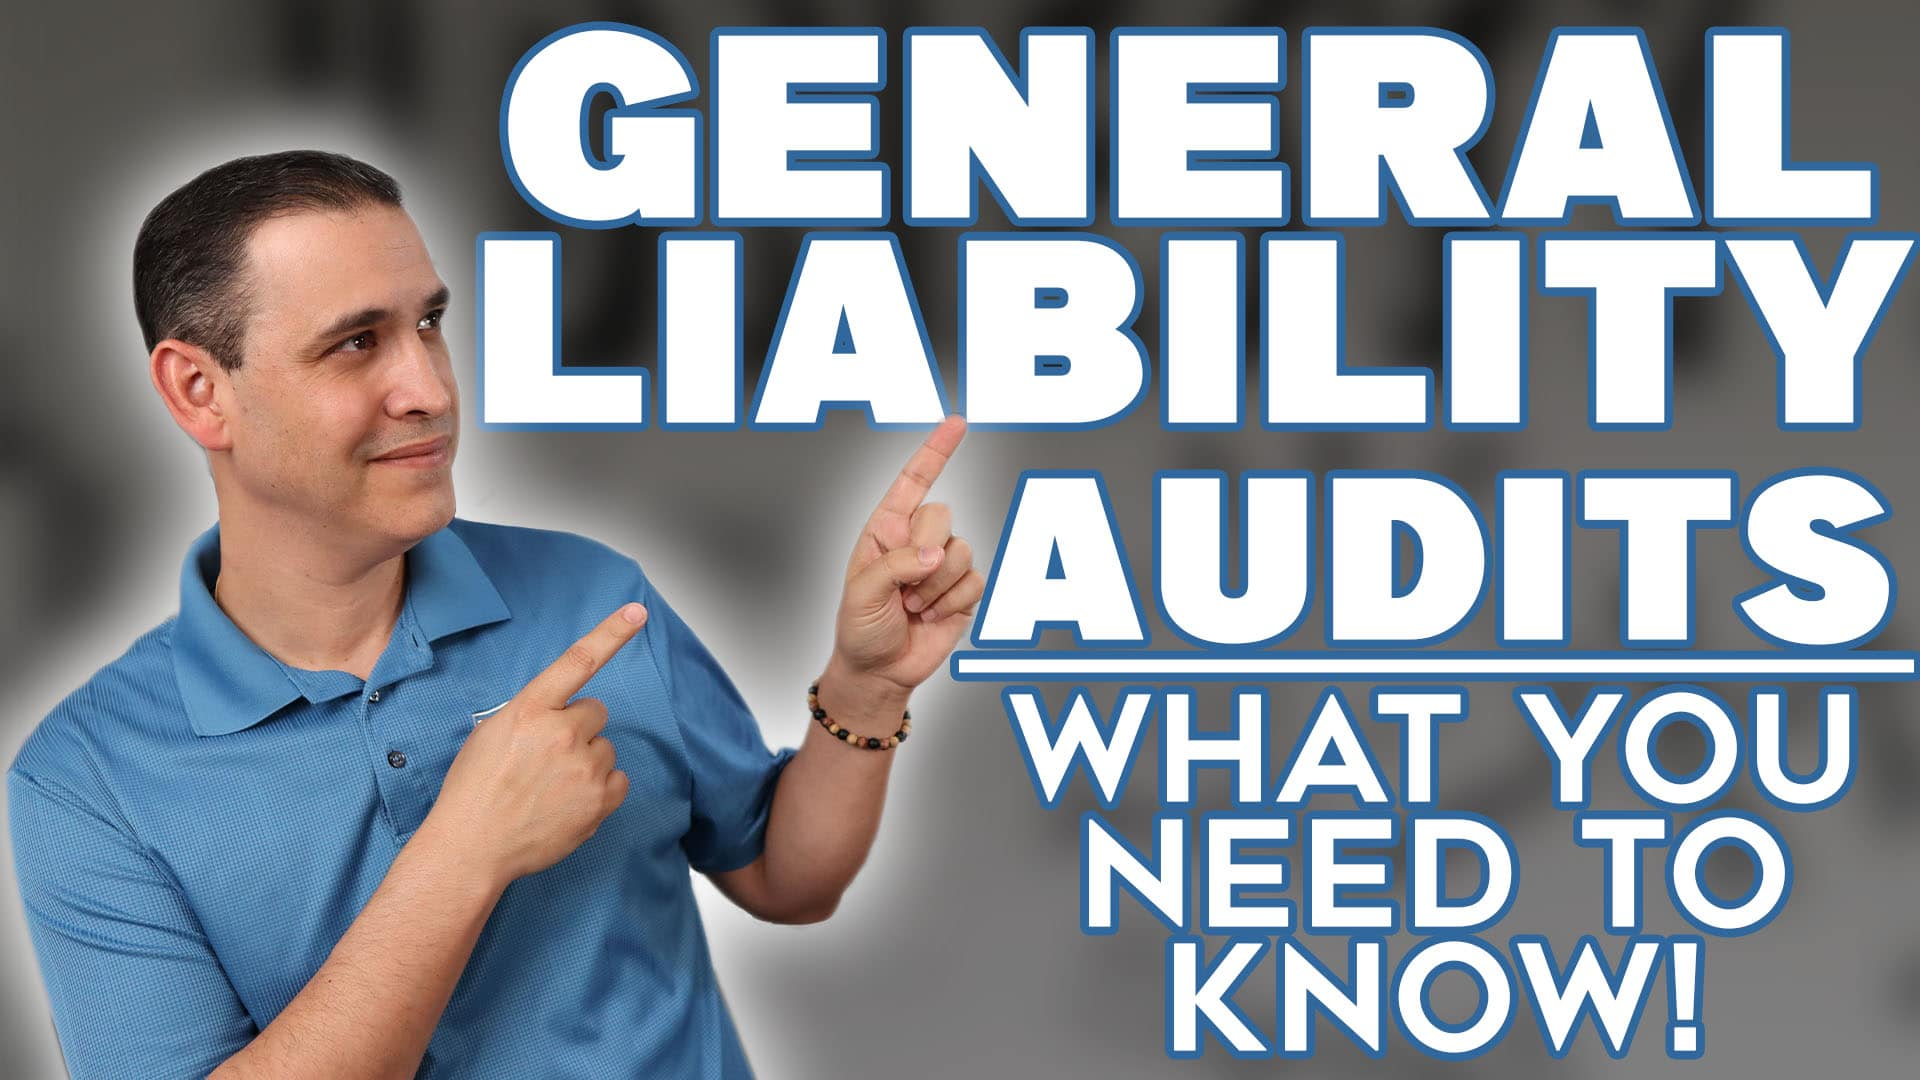 What is a General Liability Audit?